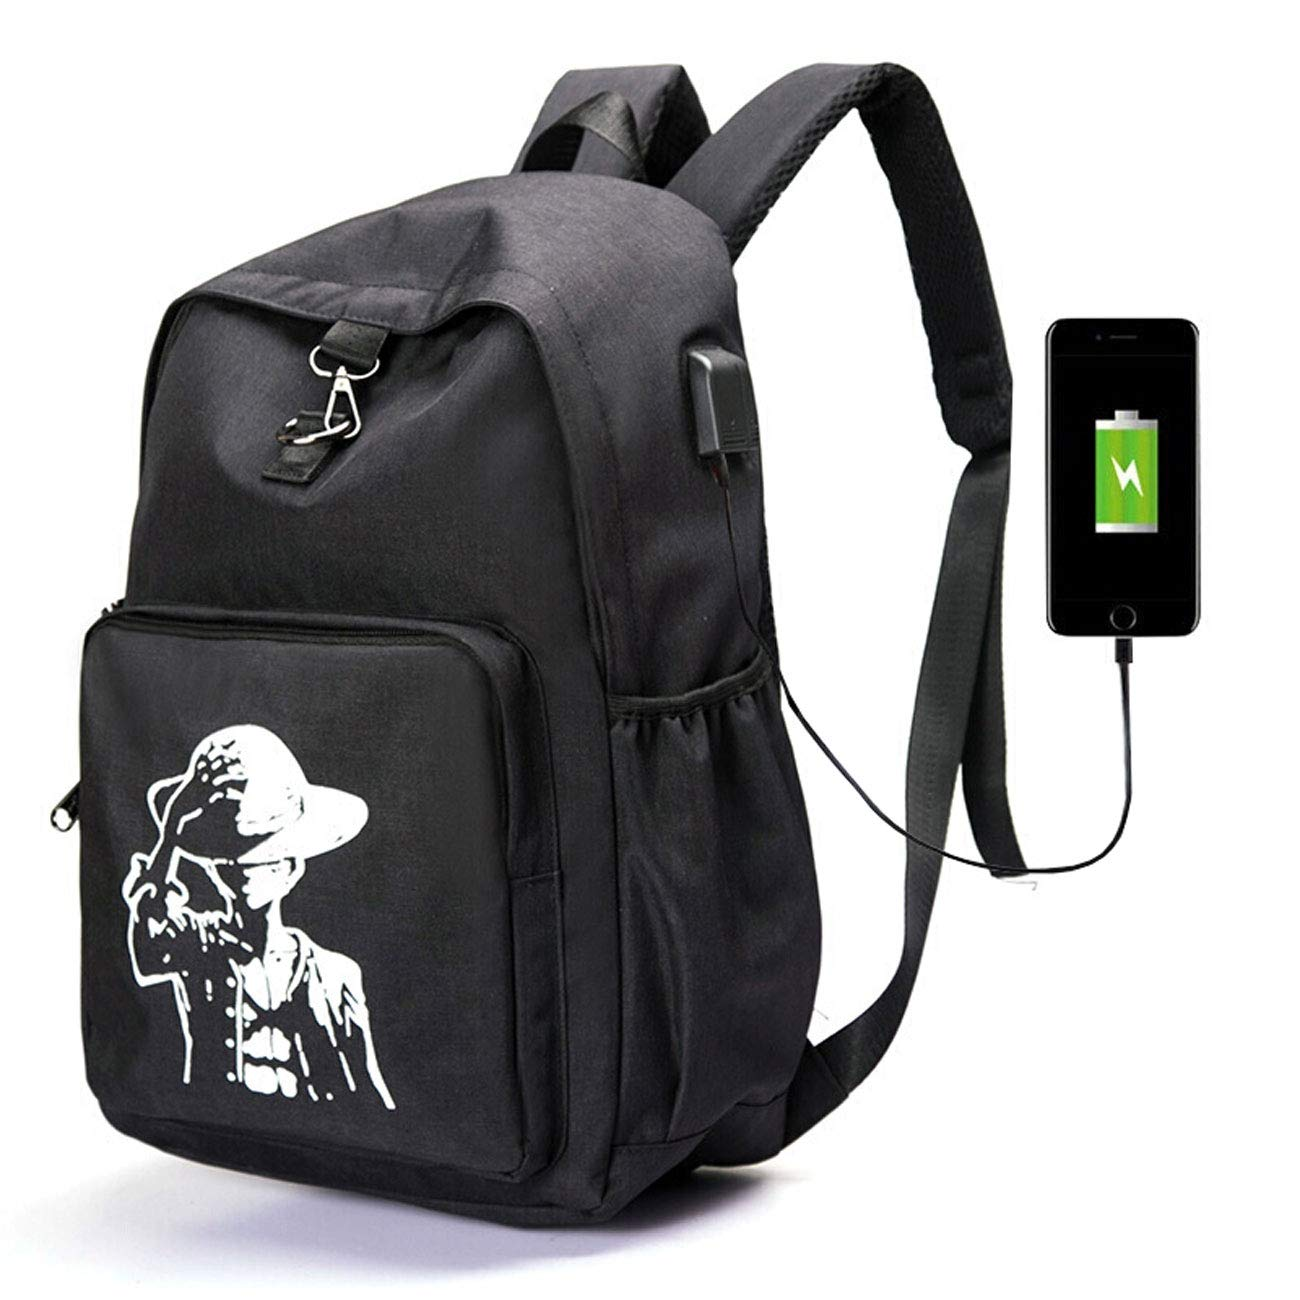 fa1be95979a9 Amazon.com: Waterproof Anti-Theft Backpack with USB Charging Port ...